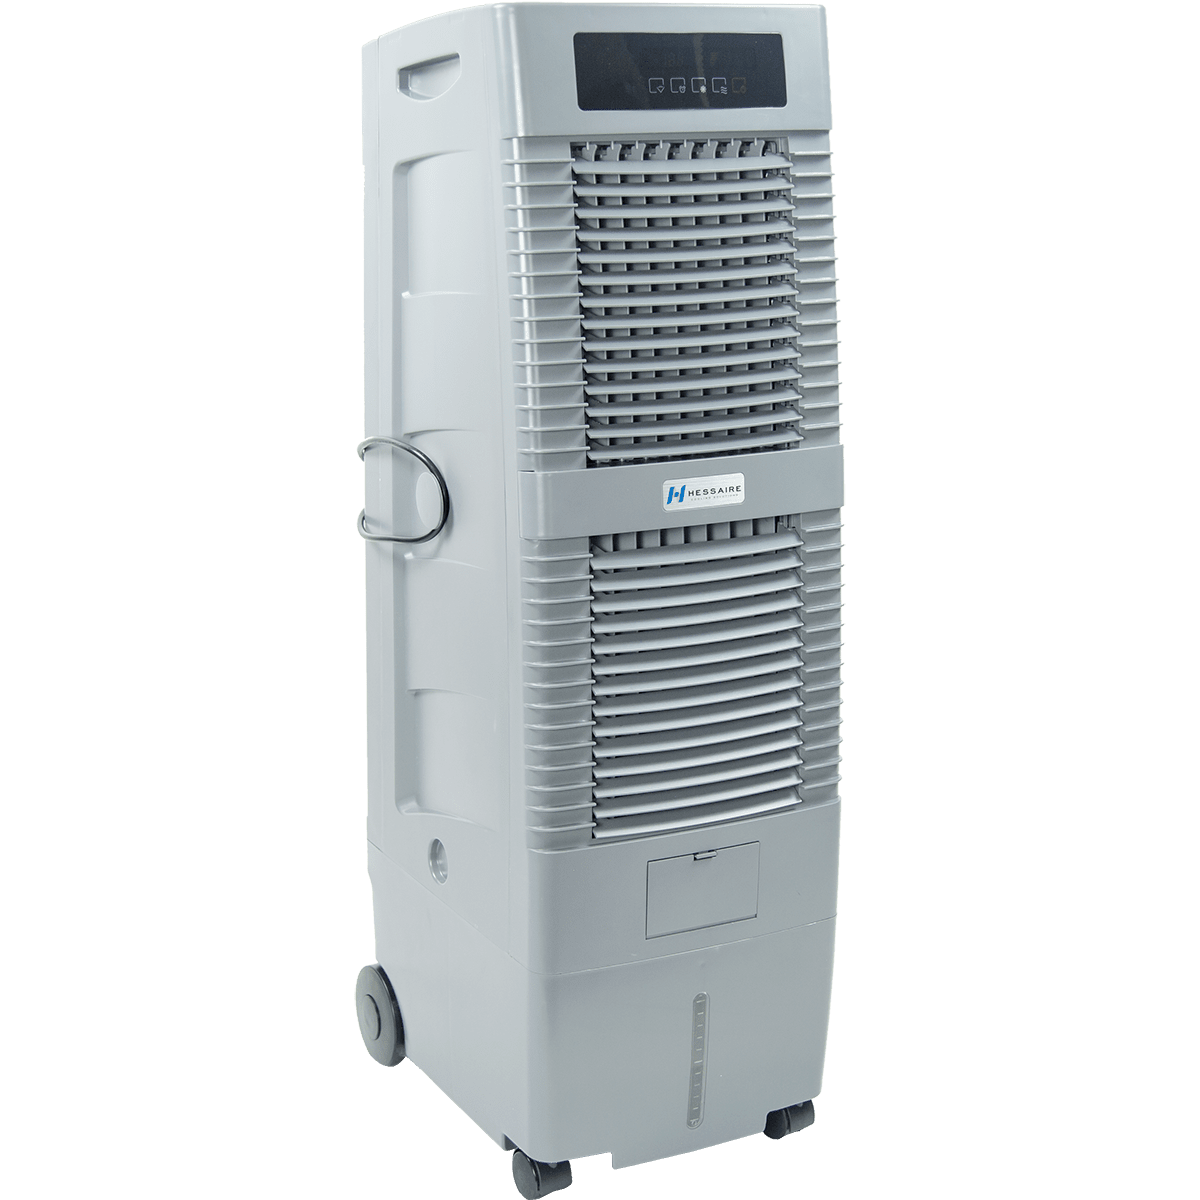 Hessaire MC21A Evaporative Swamp Cooler